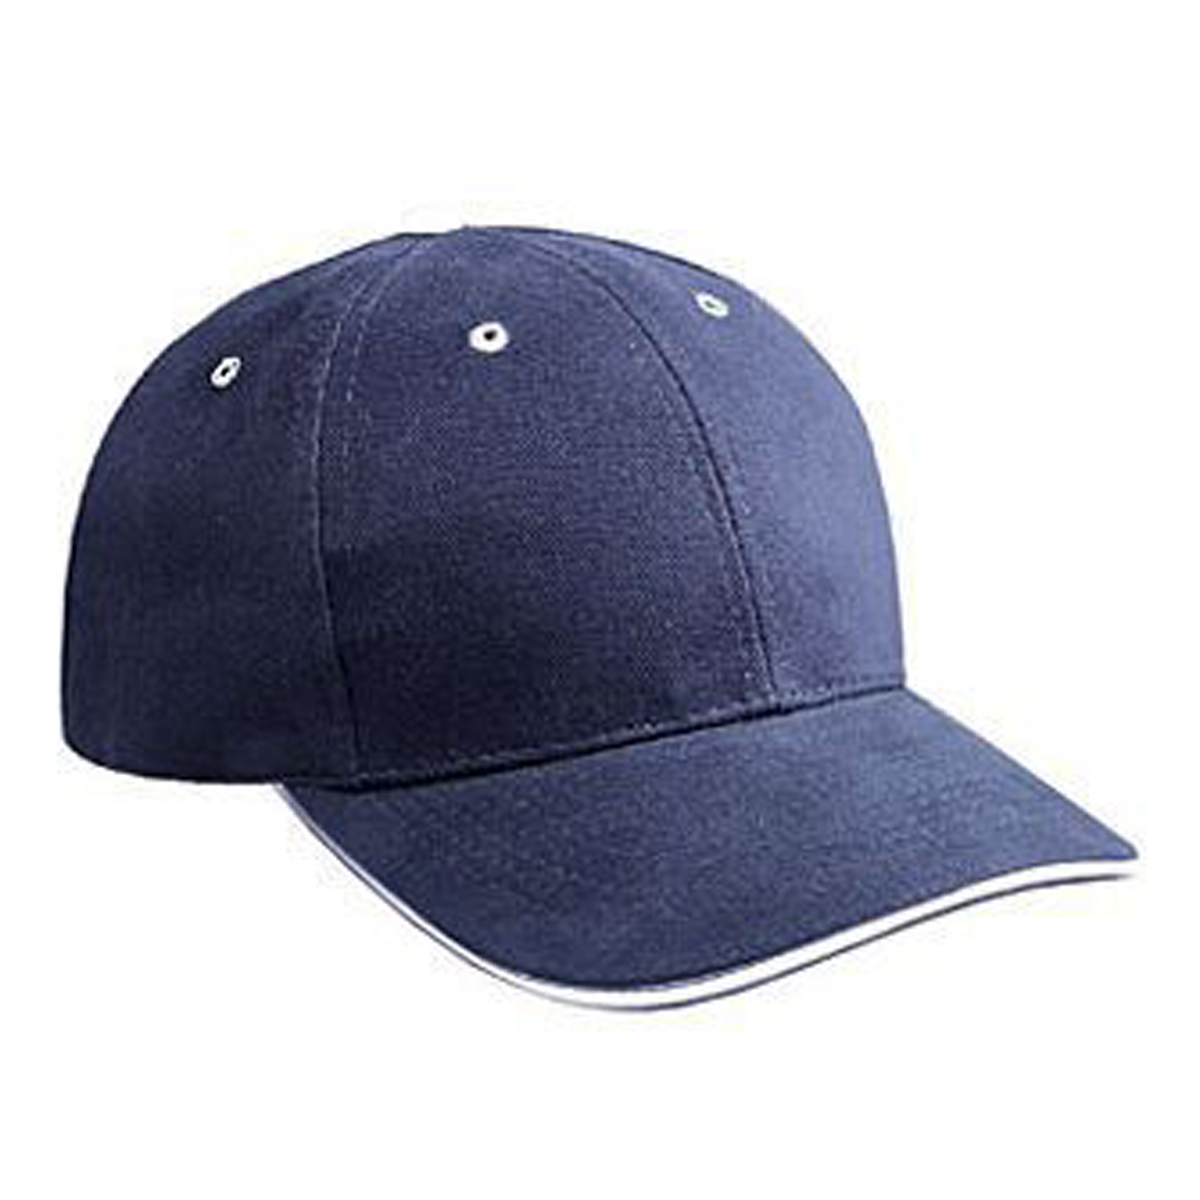 Otto Cap Brushed Bull Denim Sandwich Visor Low Profile Style Caps - Hat / Cap for Summer, Sports, Picnic, Casual wear and Reunion etc